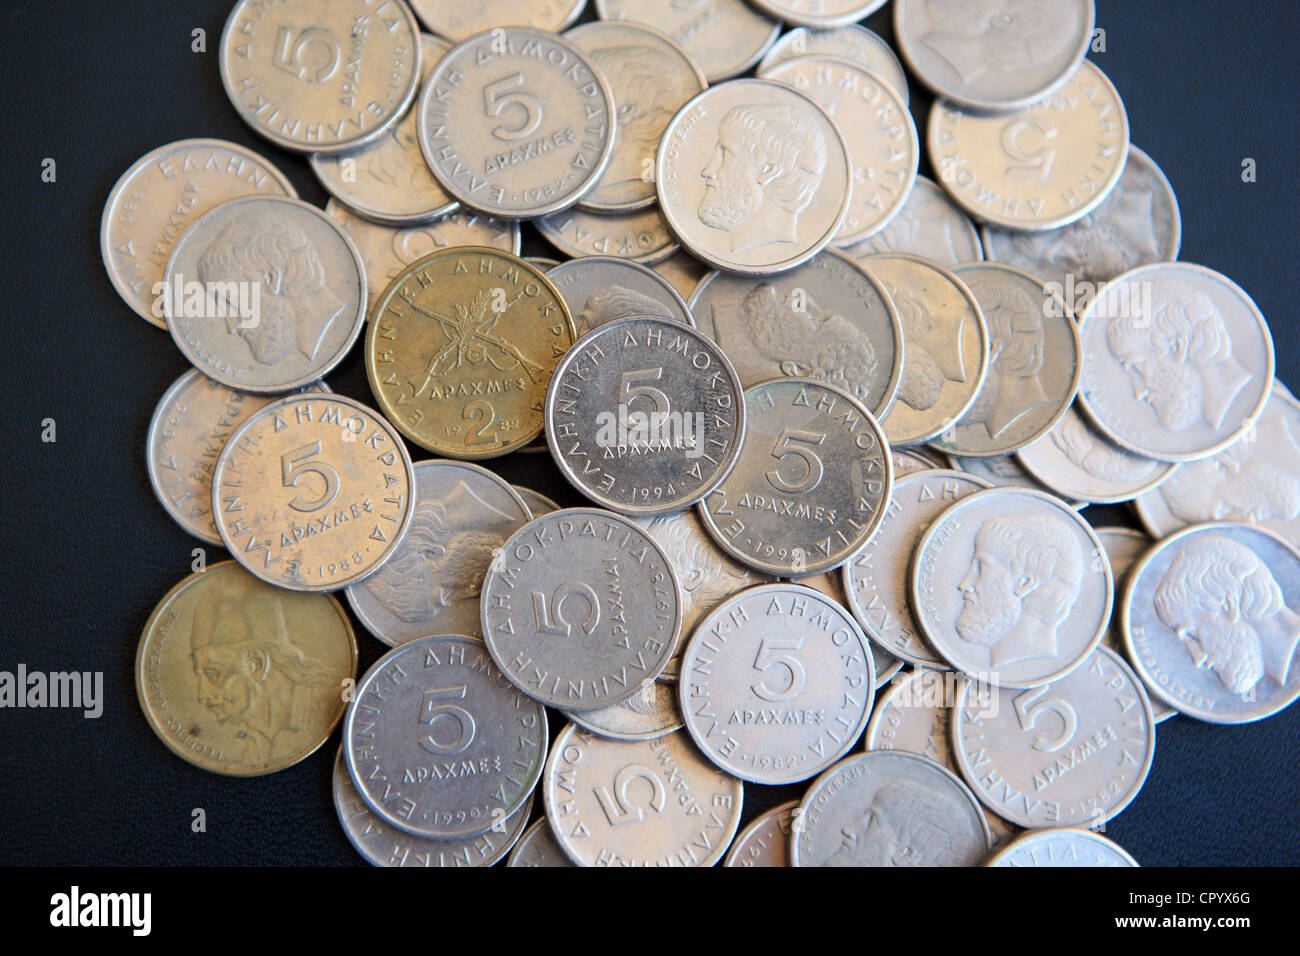 Pile of Greek Drachma coins on a black background - Stock Image